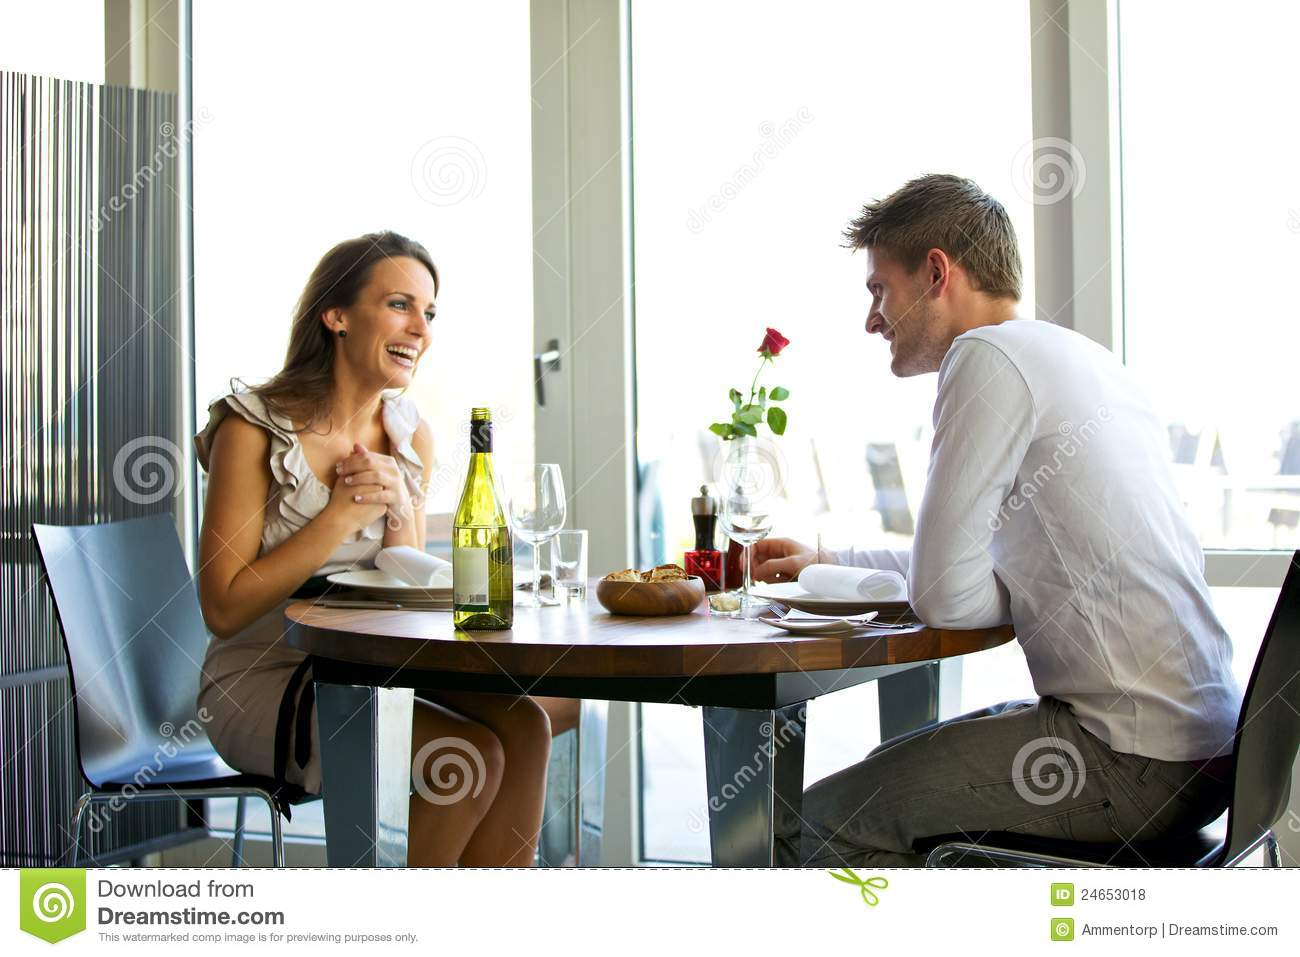 Romantic Dinner Stock Photos, Images, & Pictures - 41,792 Images